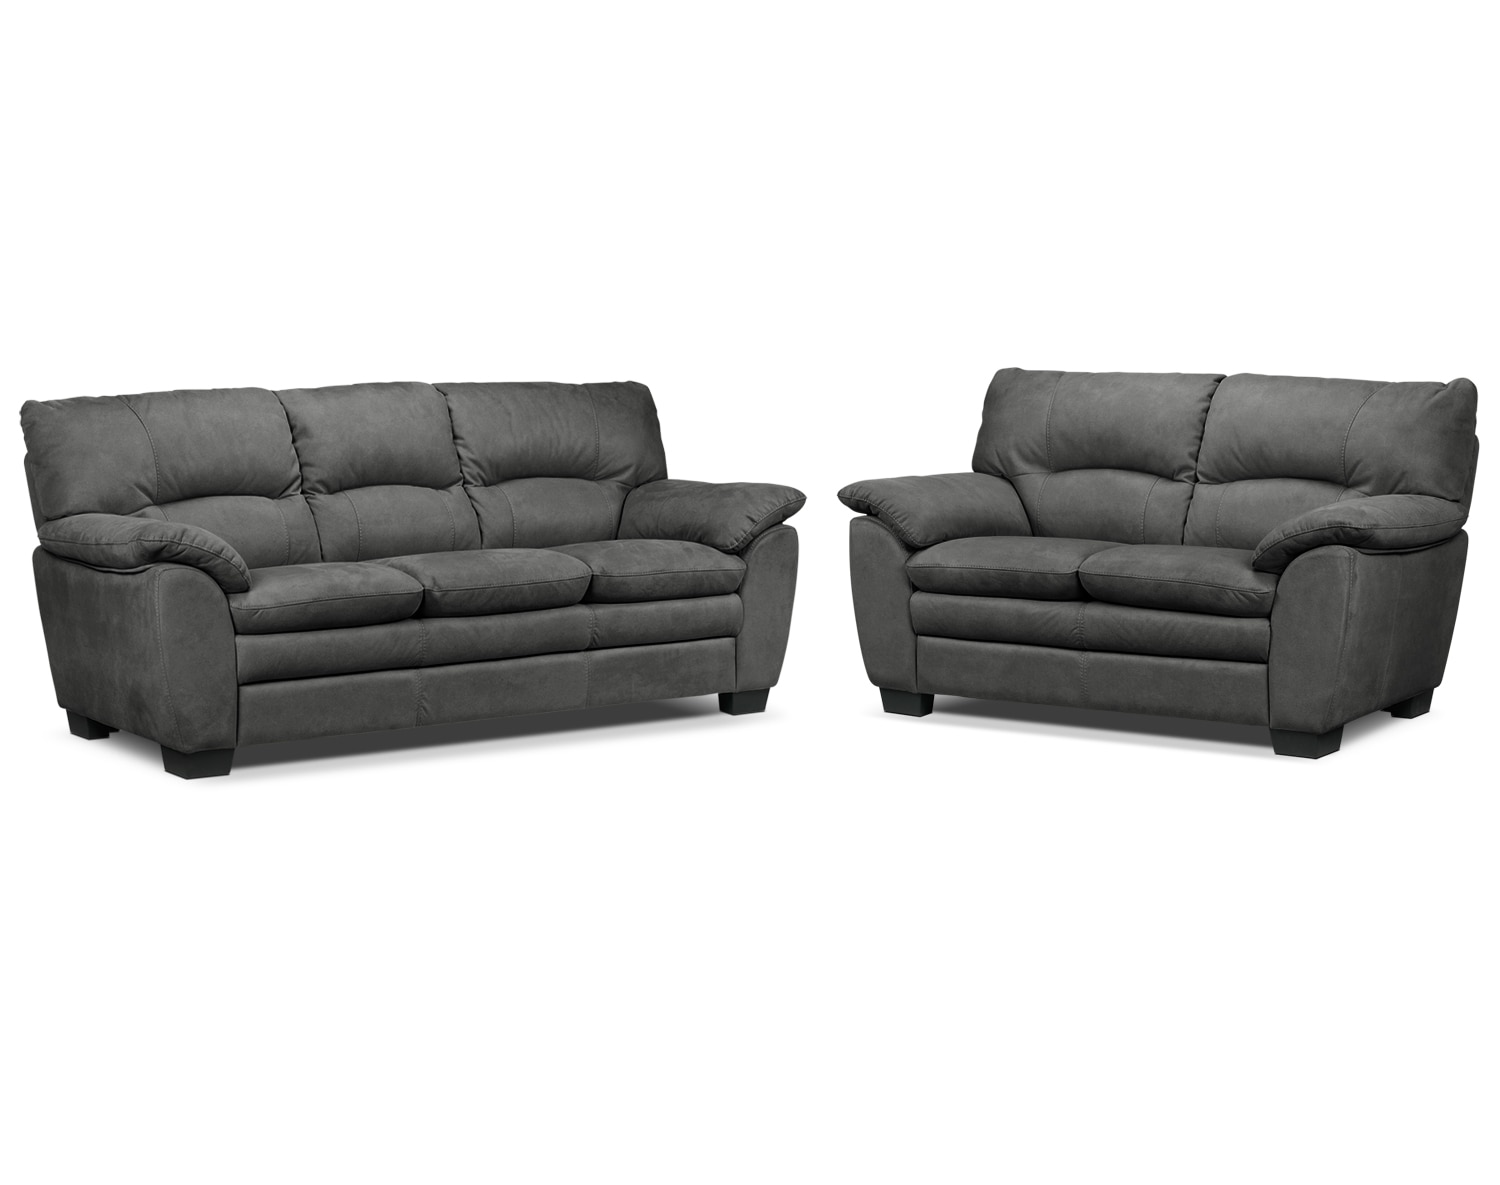 Kelleher Charcoal 2 Pc. Living Room Package